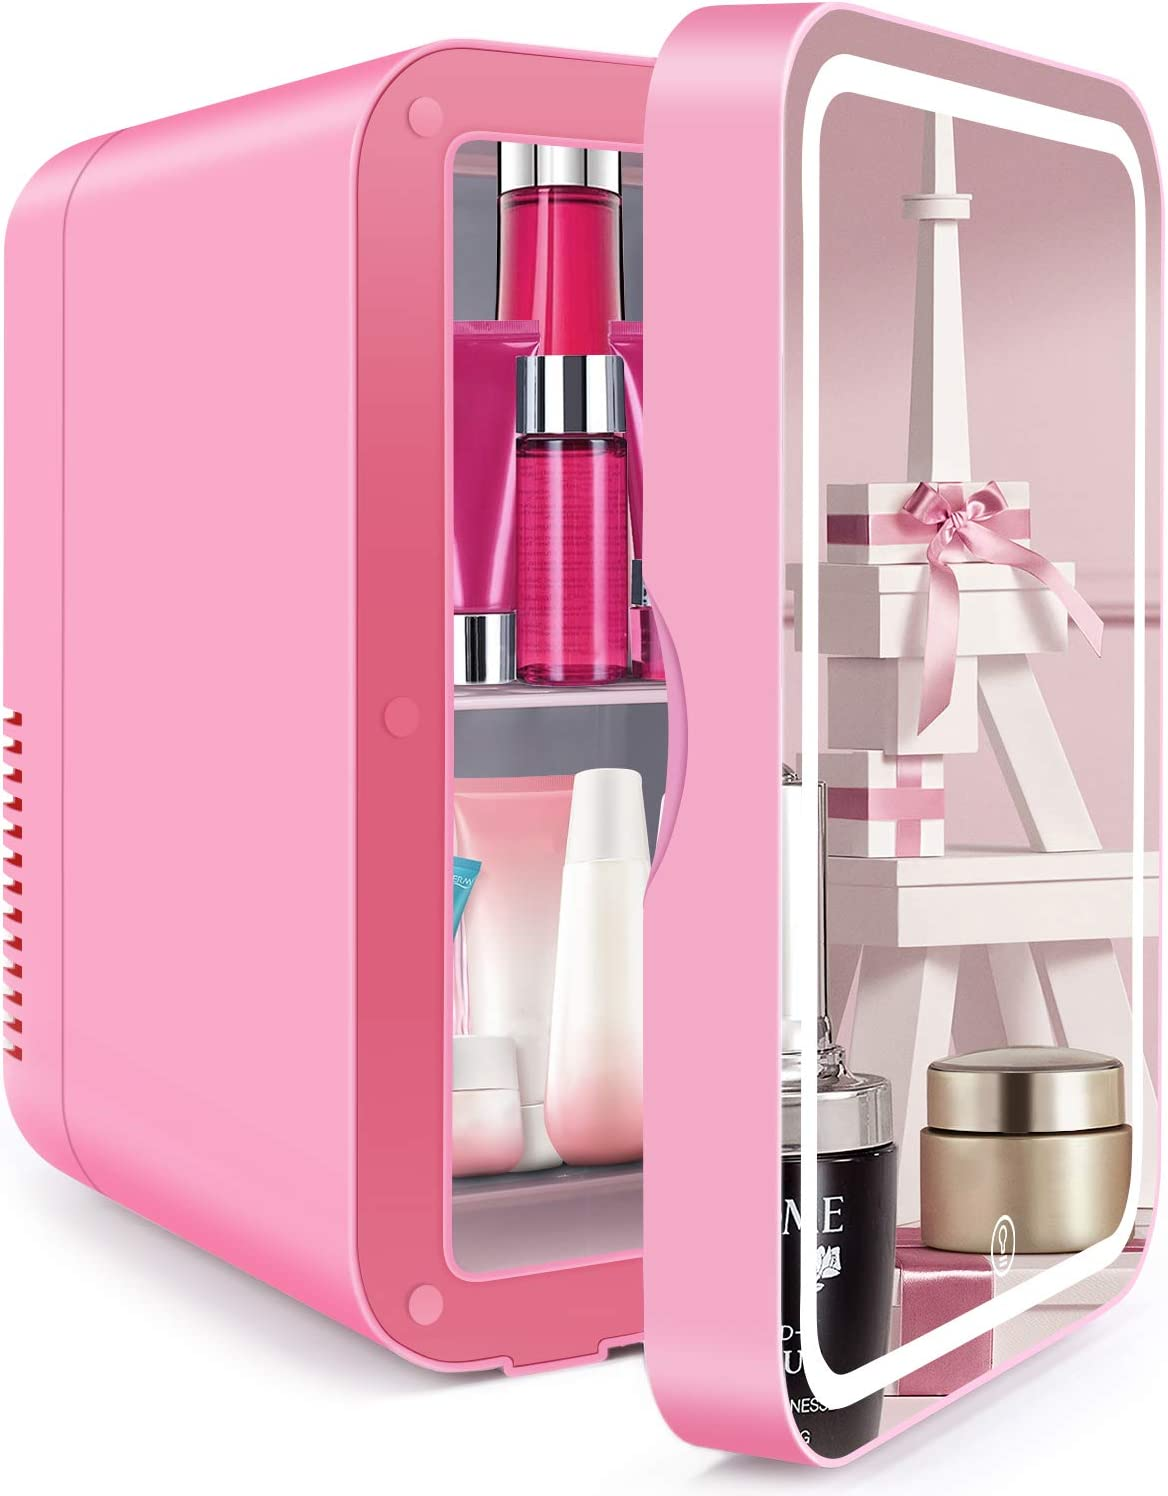 Mini Fridge 40 Liter, Portable Mirrored Beauty Fridge With LED Lighting,  AC/DC Portable Beauty Fridge Thermoelectric Cooler and Warmer for Skincare,  ...